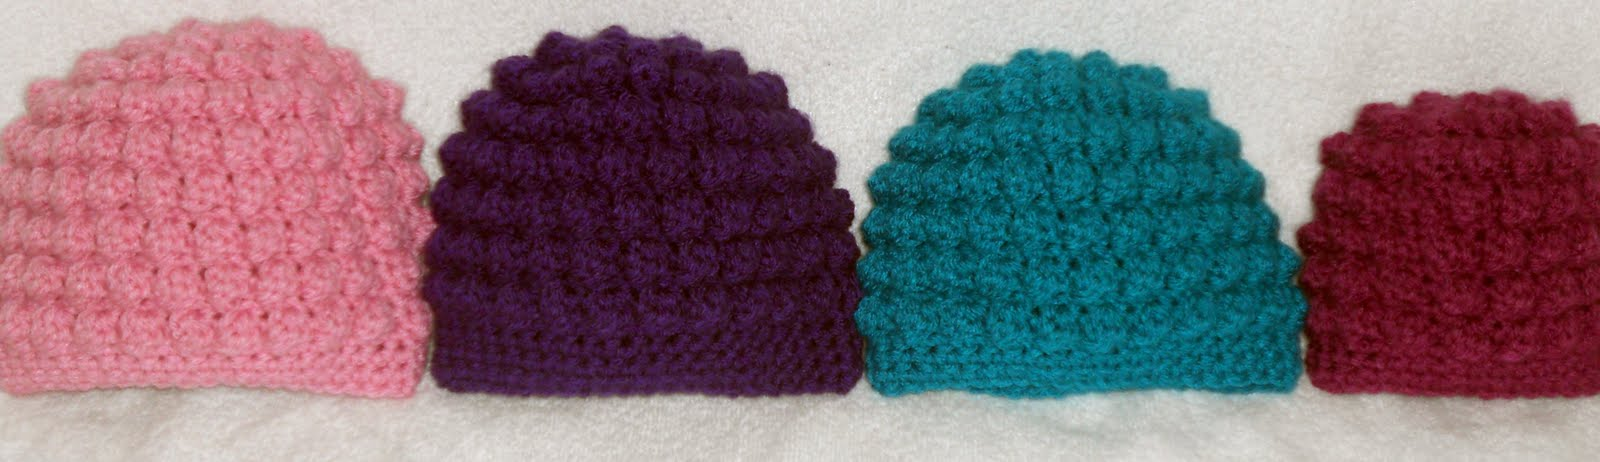 Crafty Woman Creations Free Baby Bumpy Bobbles Beanie Crochet Pattern